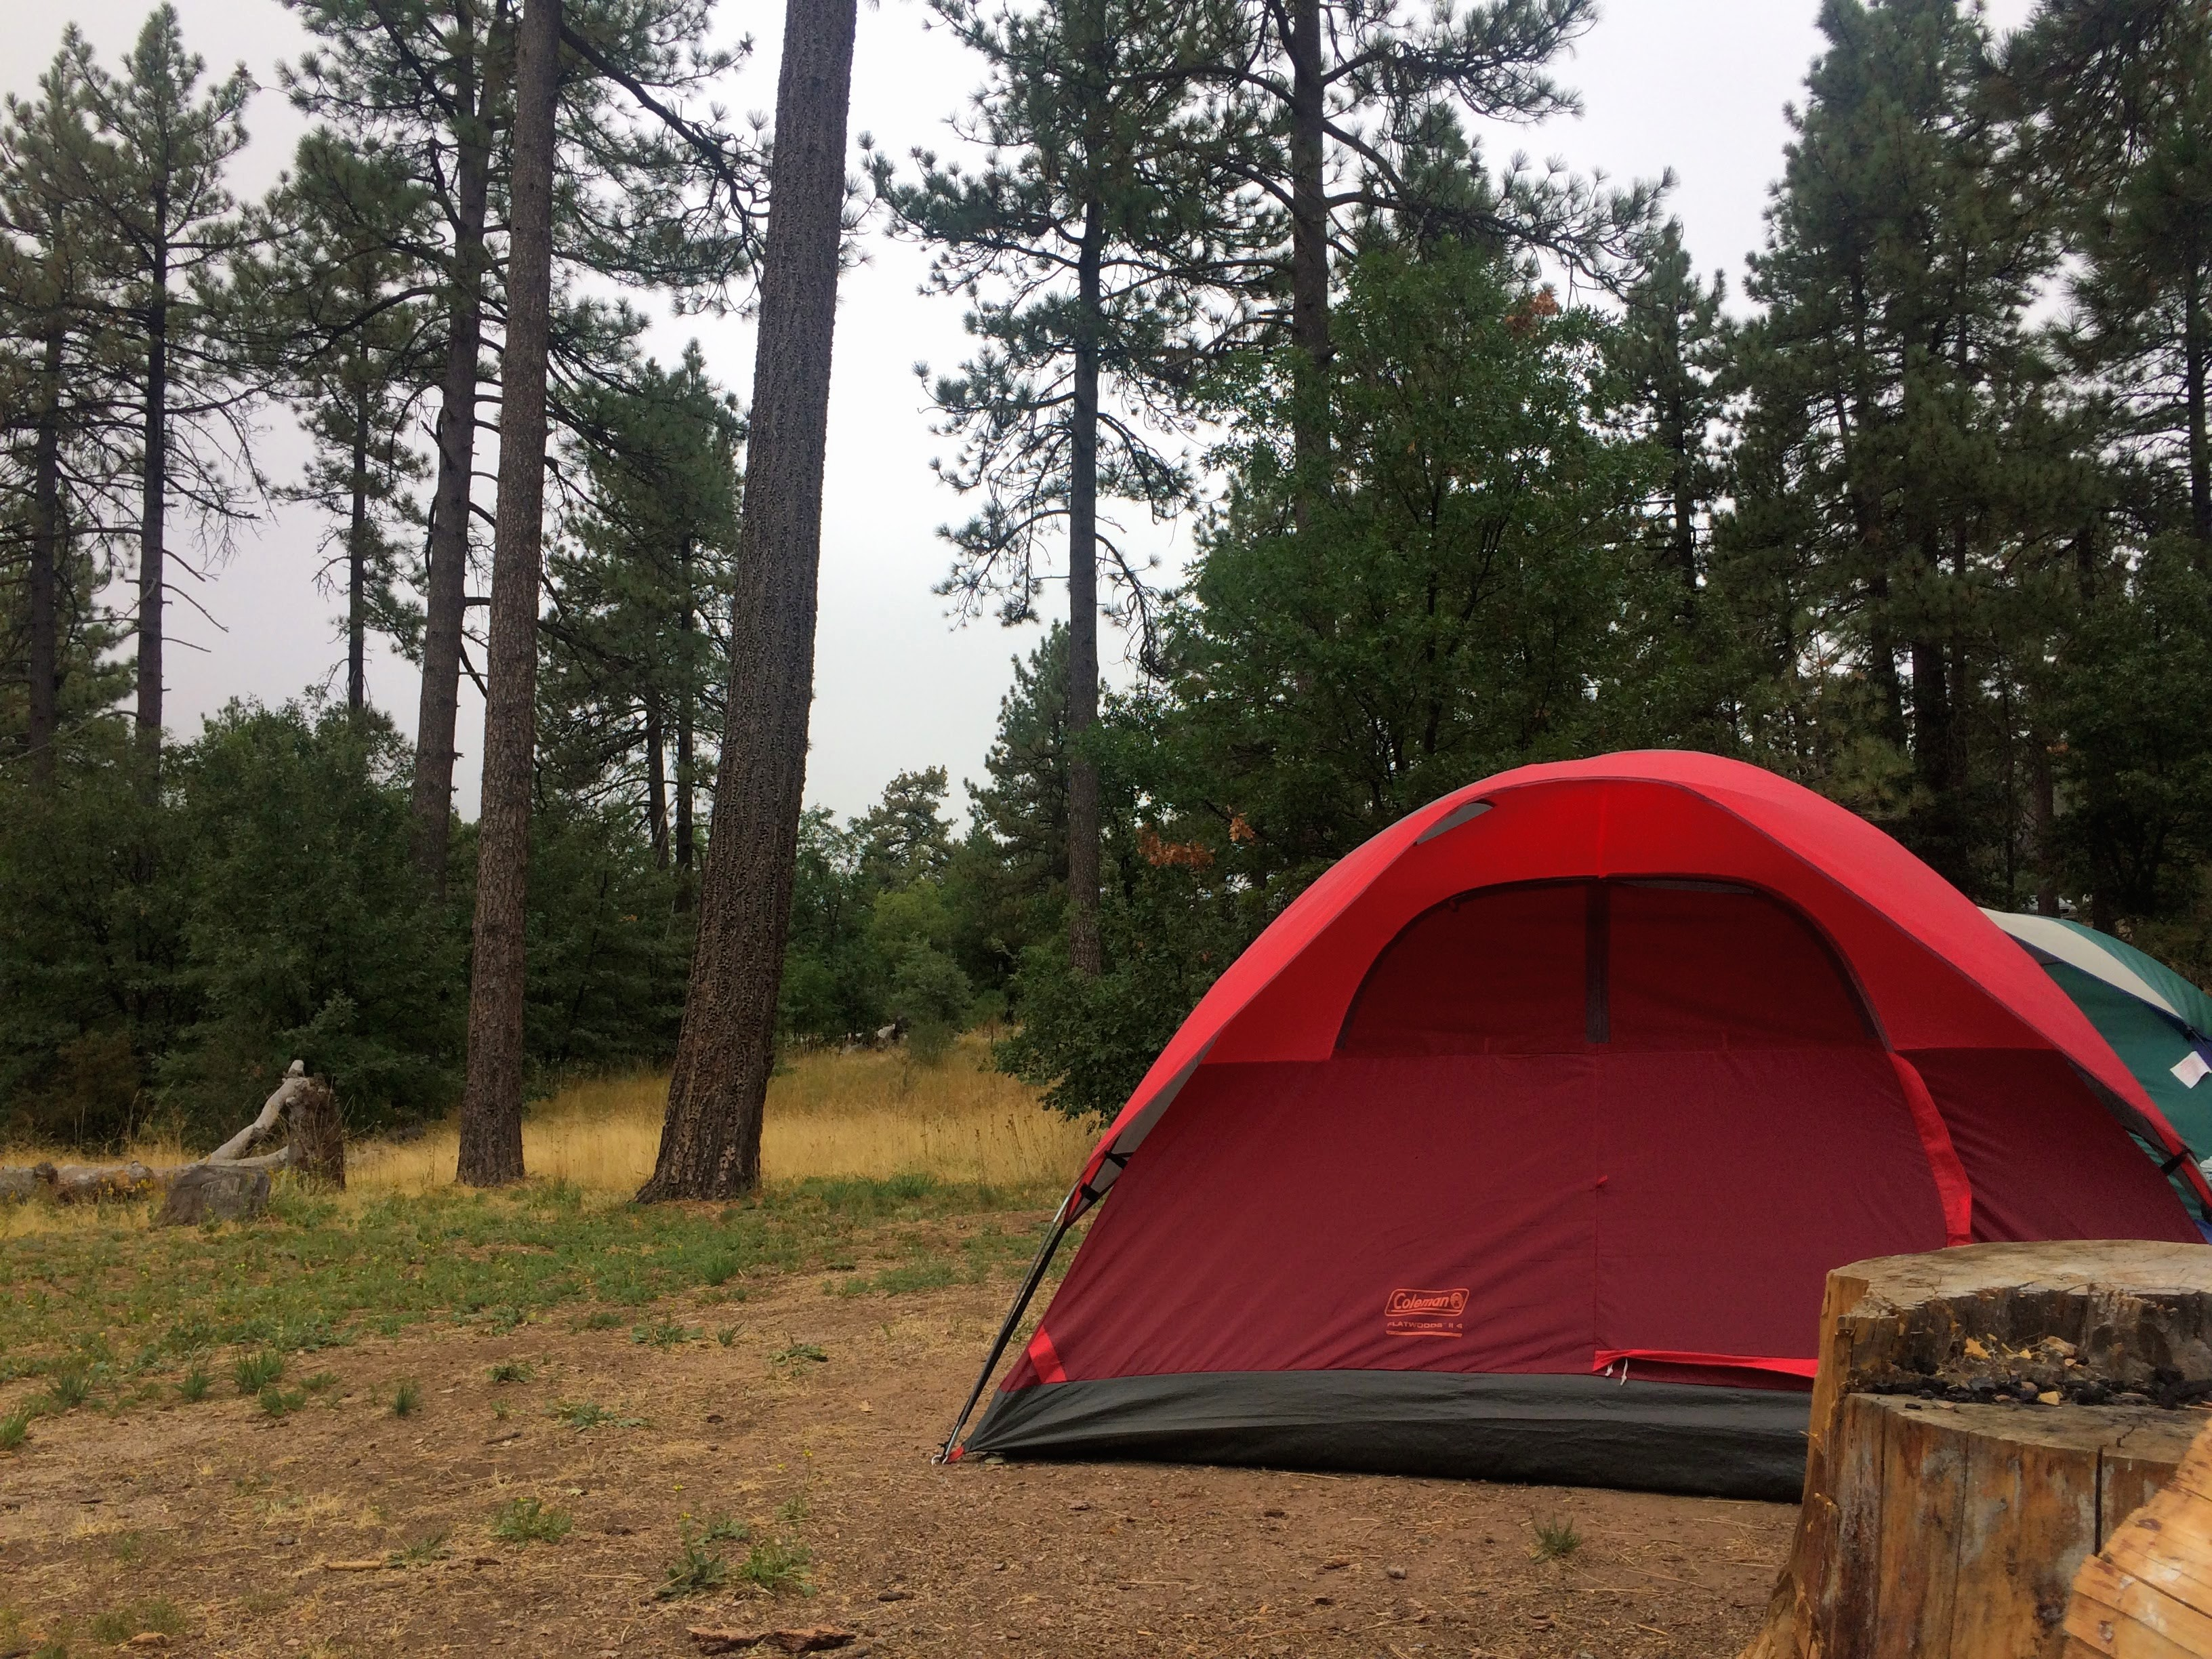 Summer Camping Series: Mount Laguna